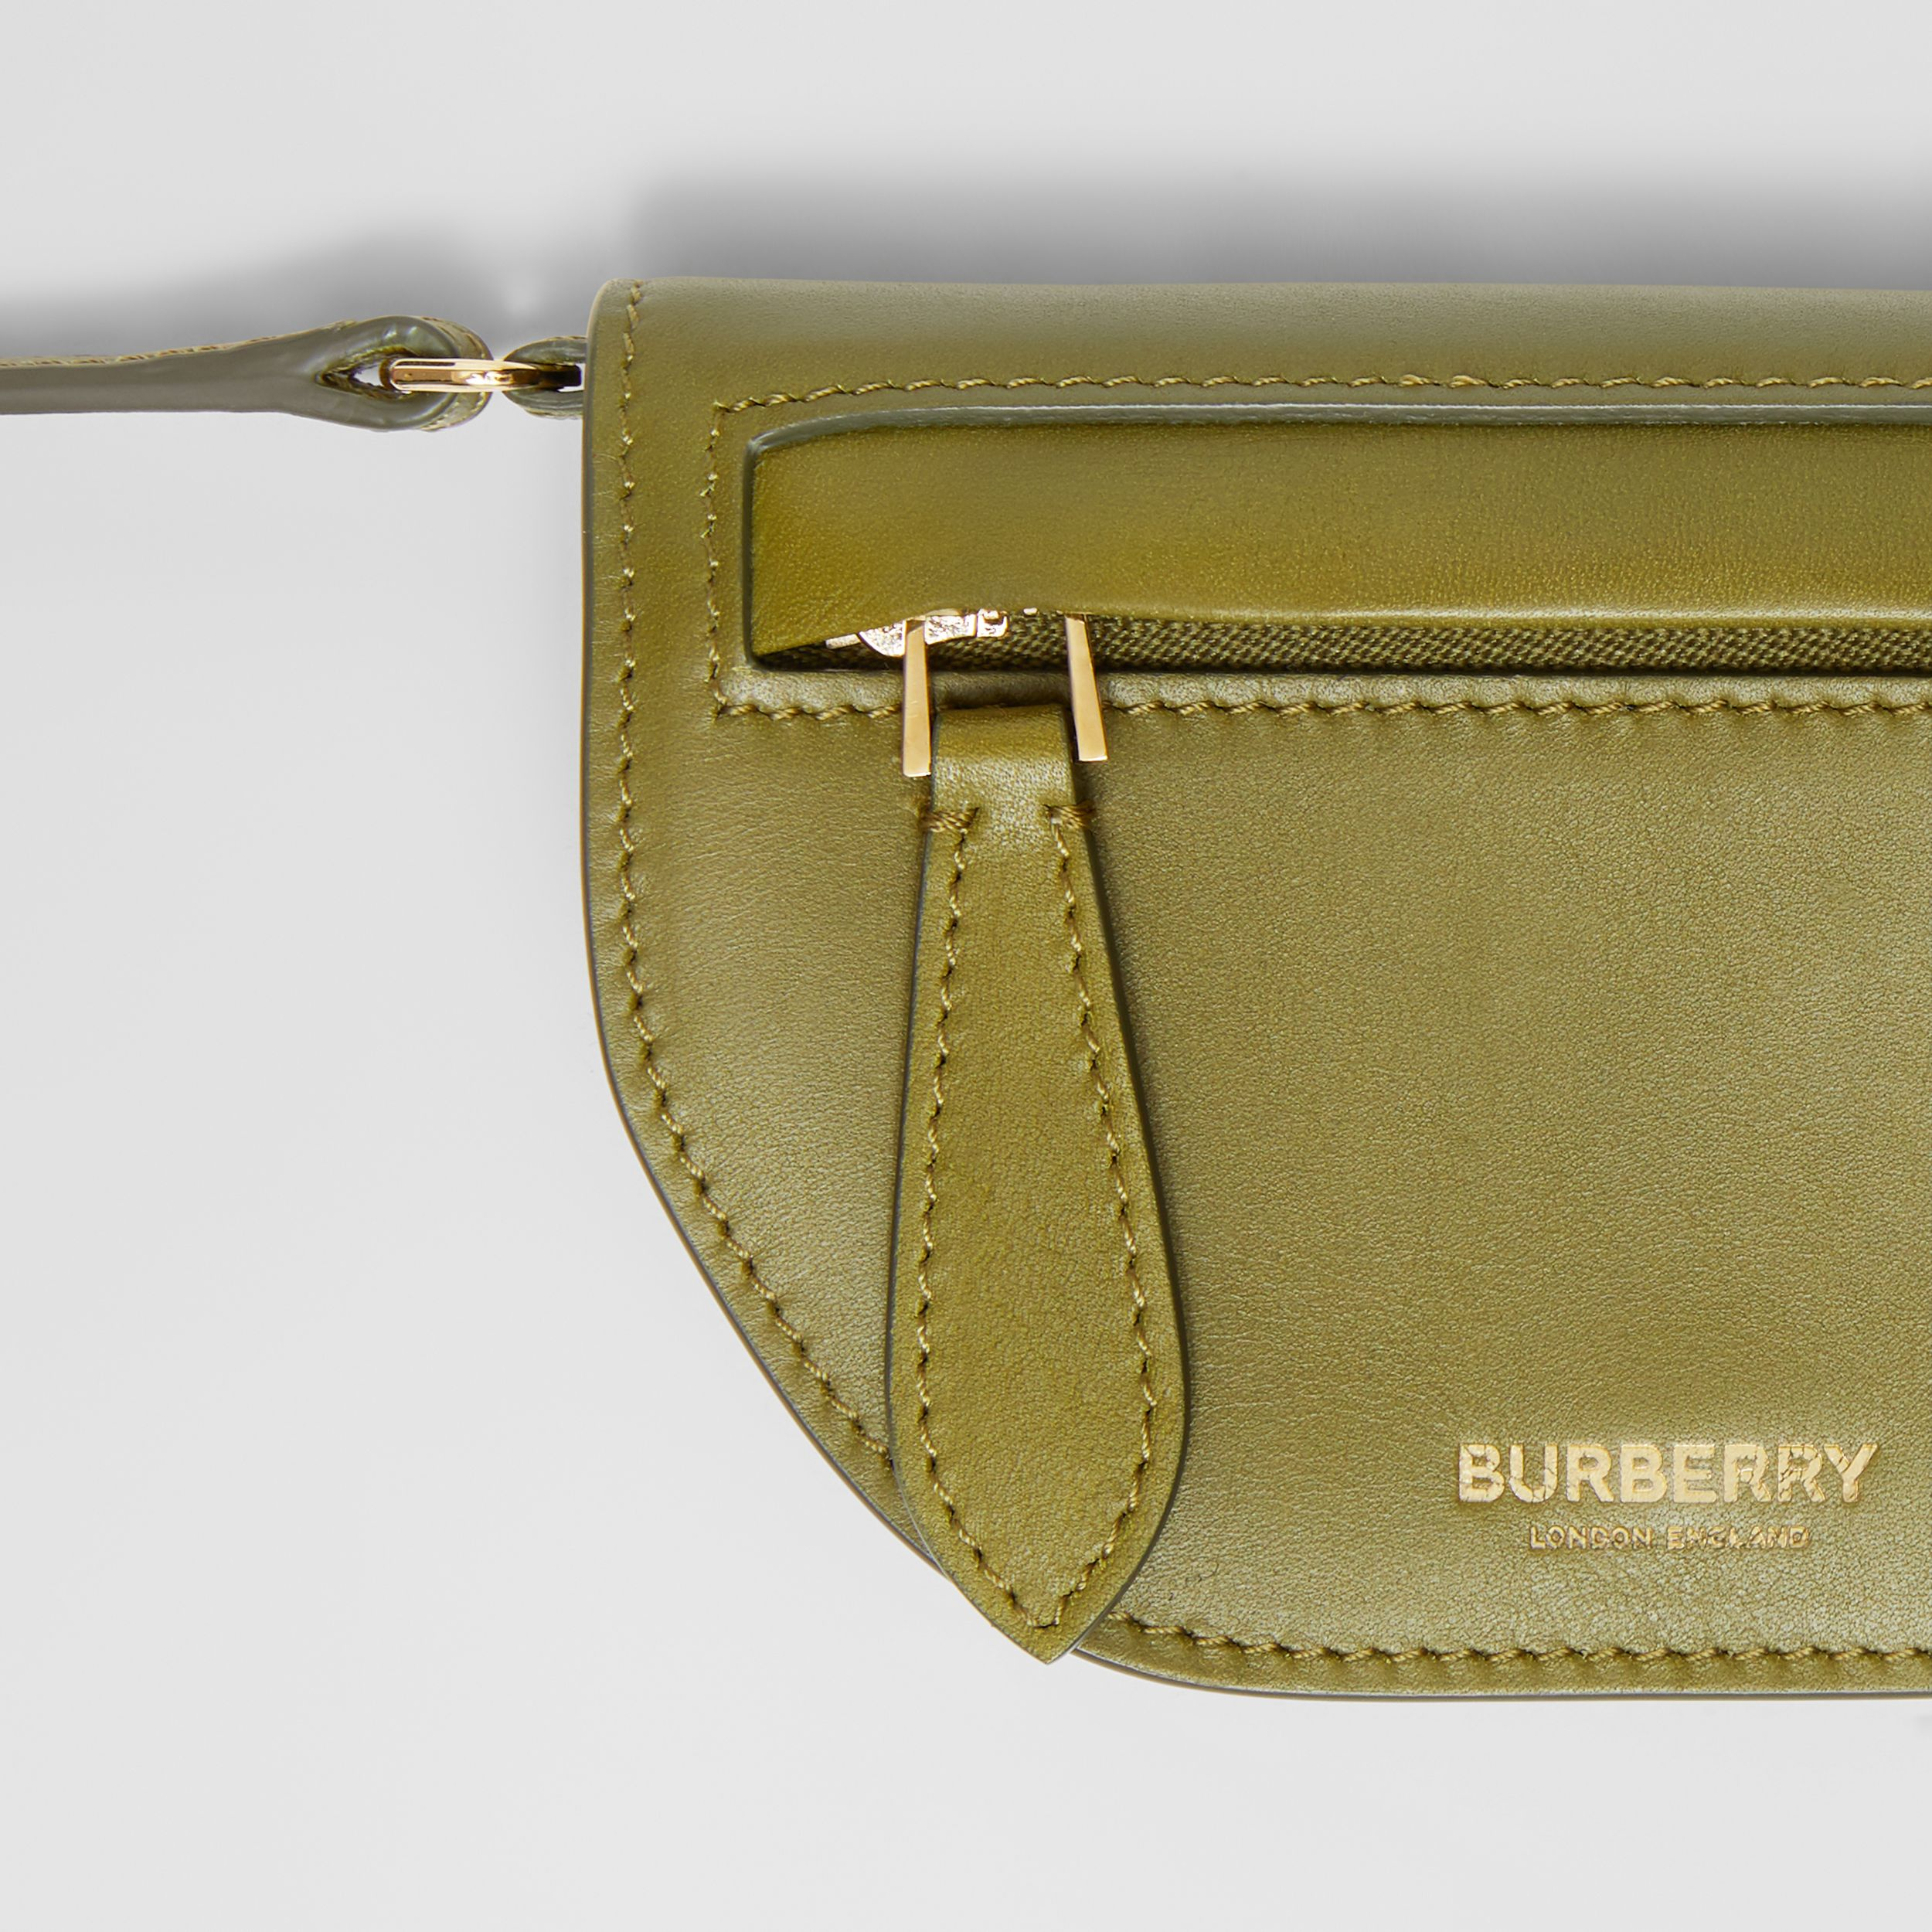 Leather Olympia Card Case with Detachable Strap in Juniper Green | Burberry - 2